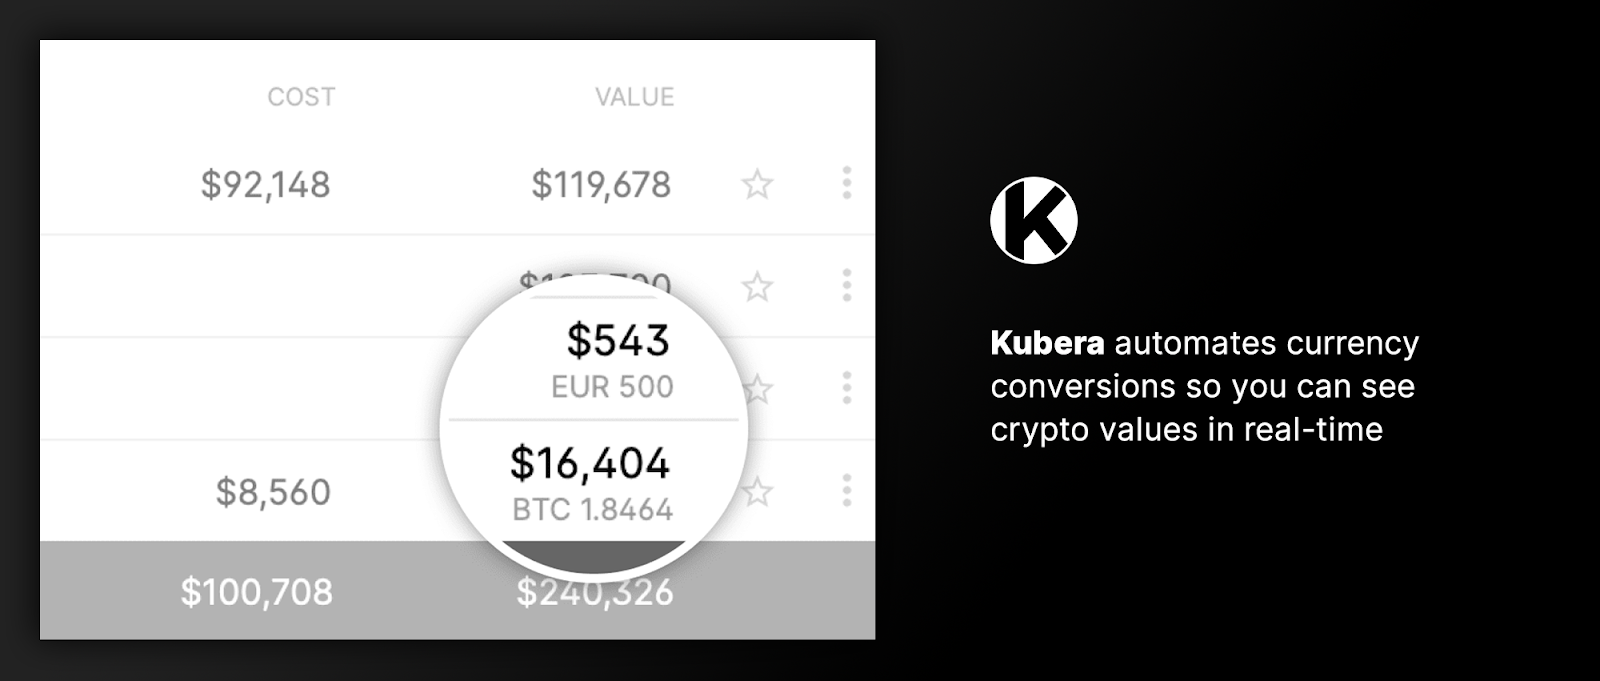 Kubera Natively Supports Major Fiat Currencies and Cryptocurrencies